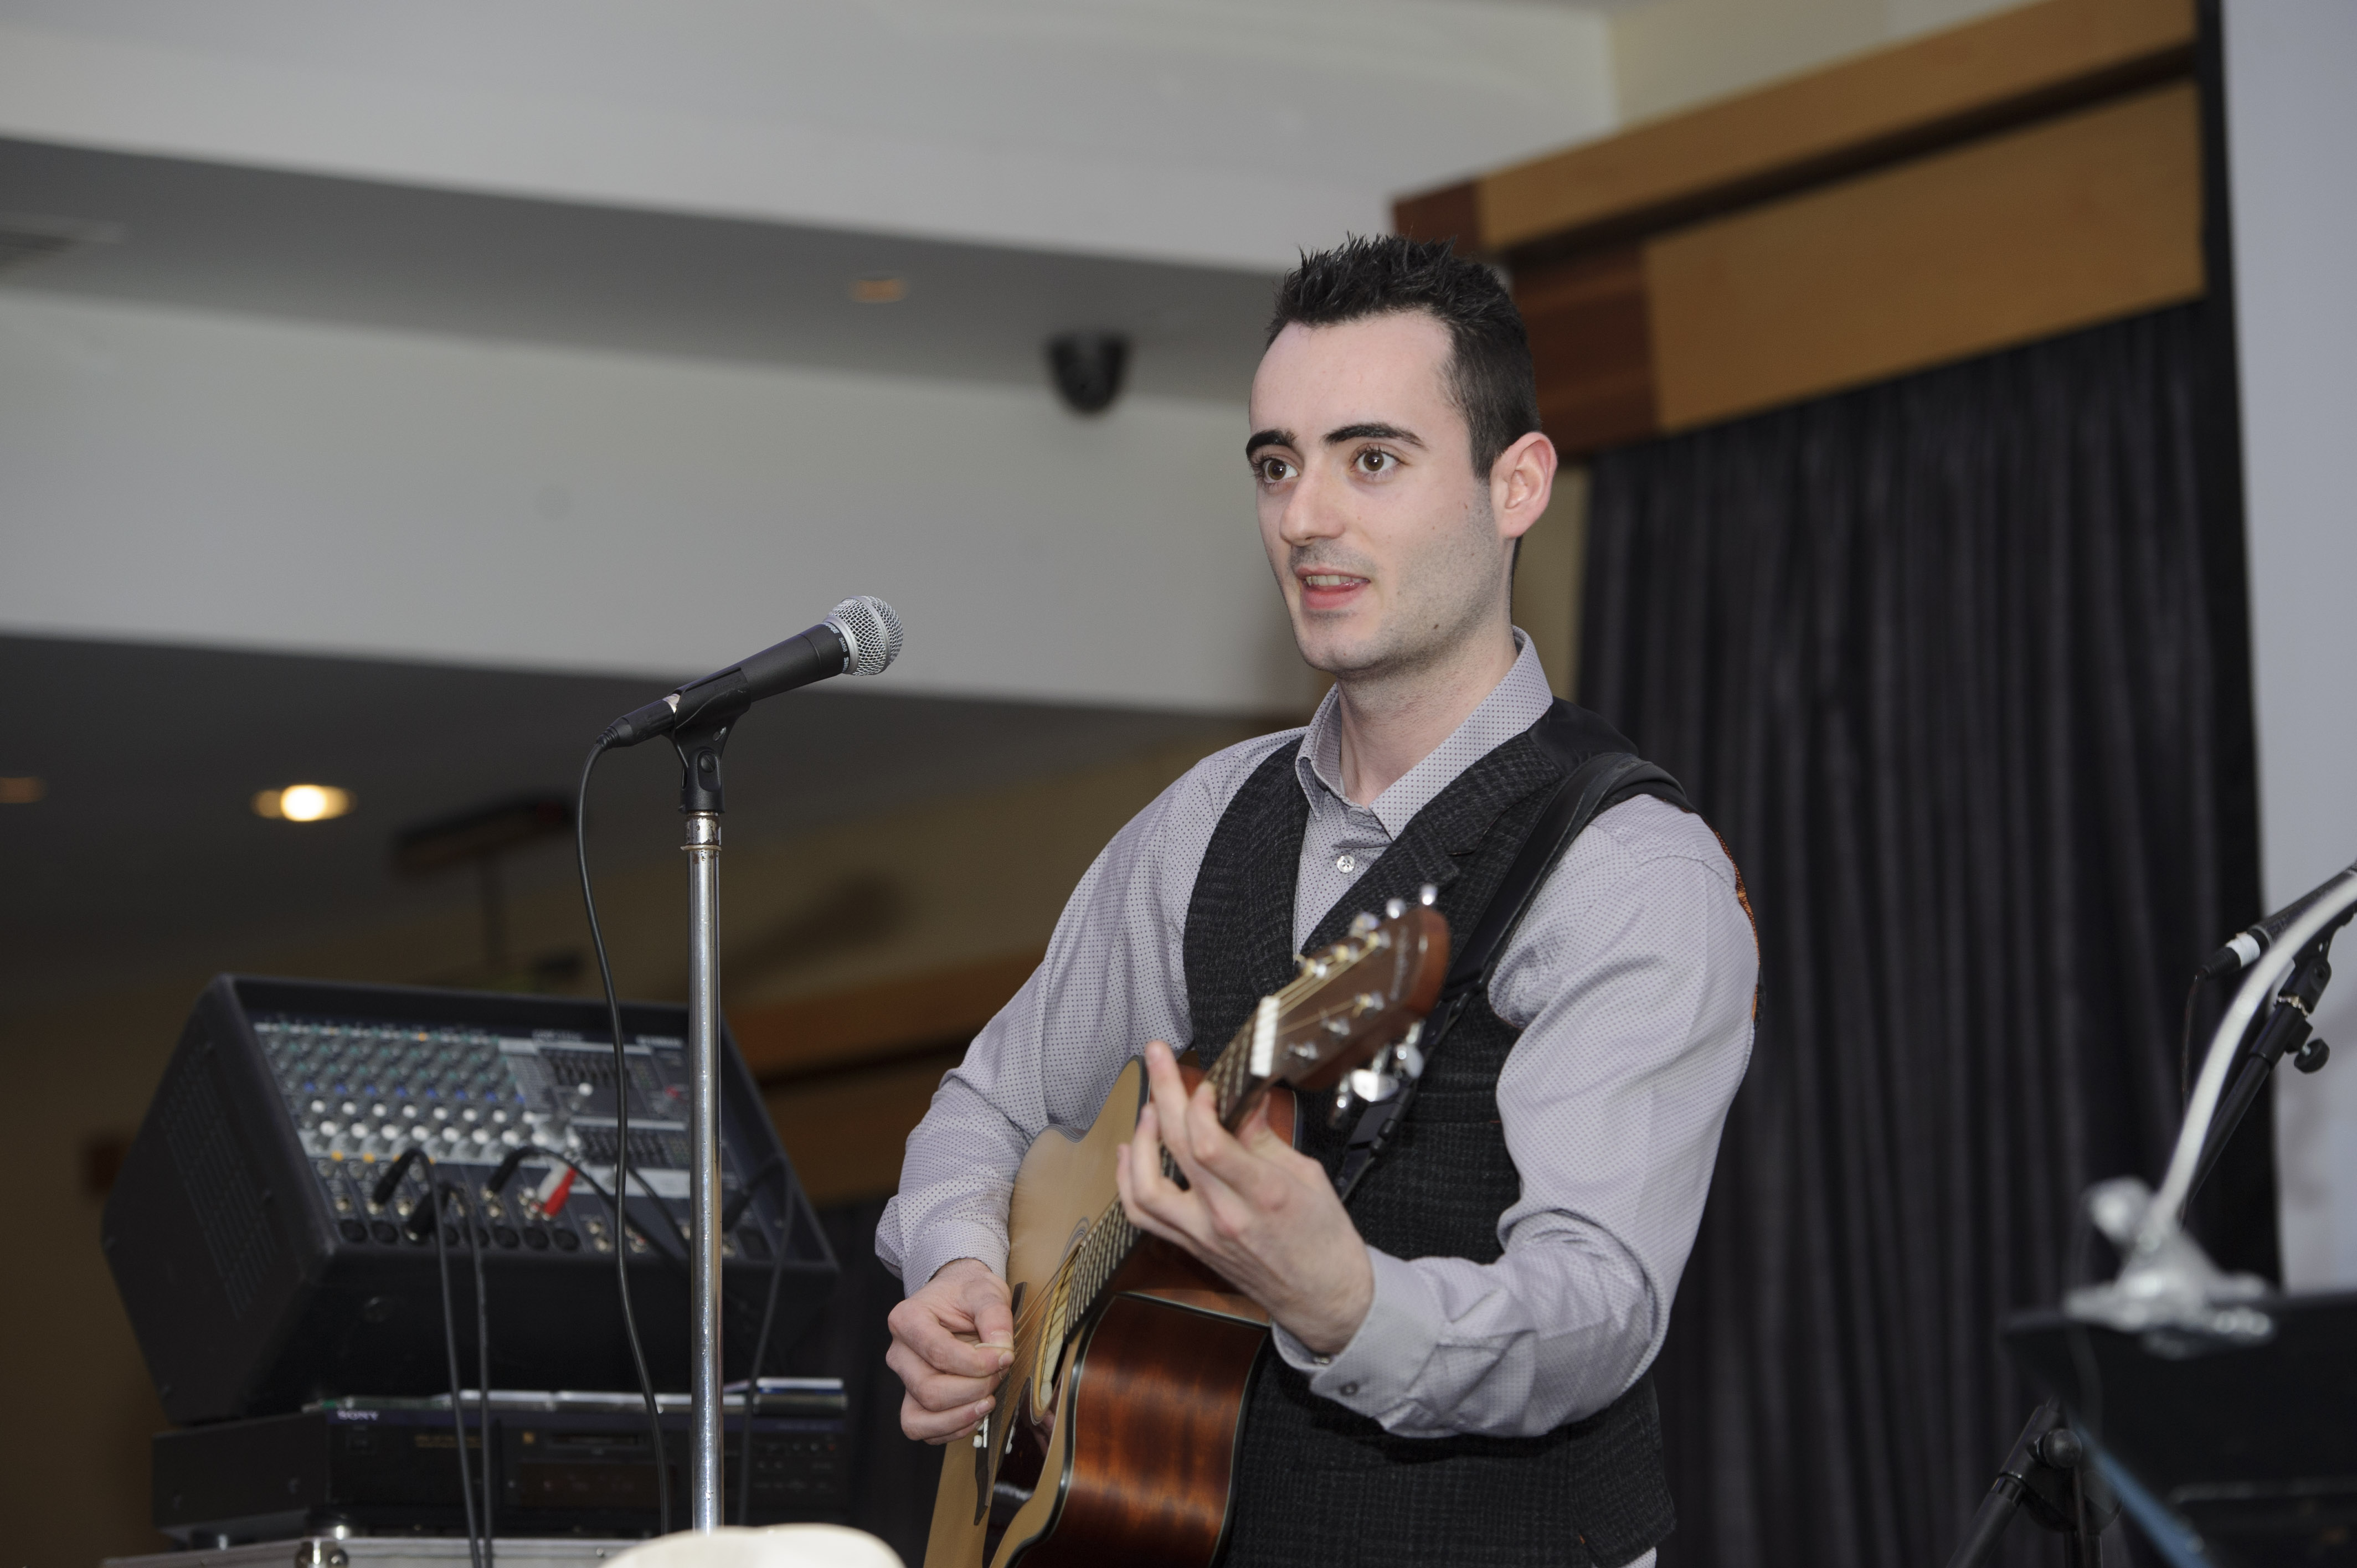 Aidan Clerkin at Pat The President's Country Music & Western Night in The Hillgrove Hotel. ©Rory Geary/The Northern Standard